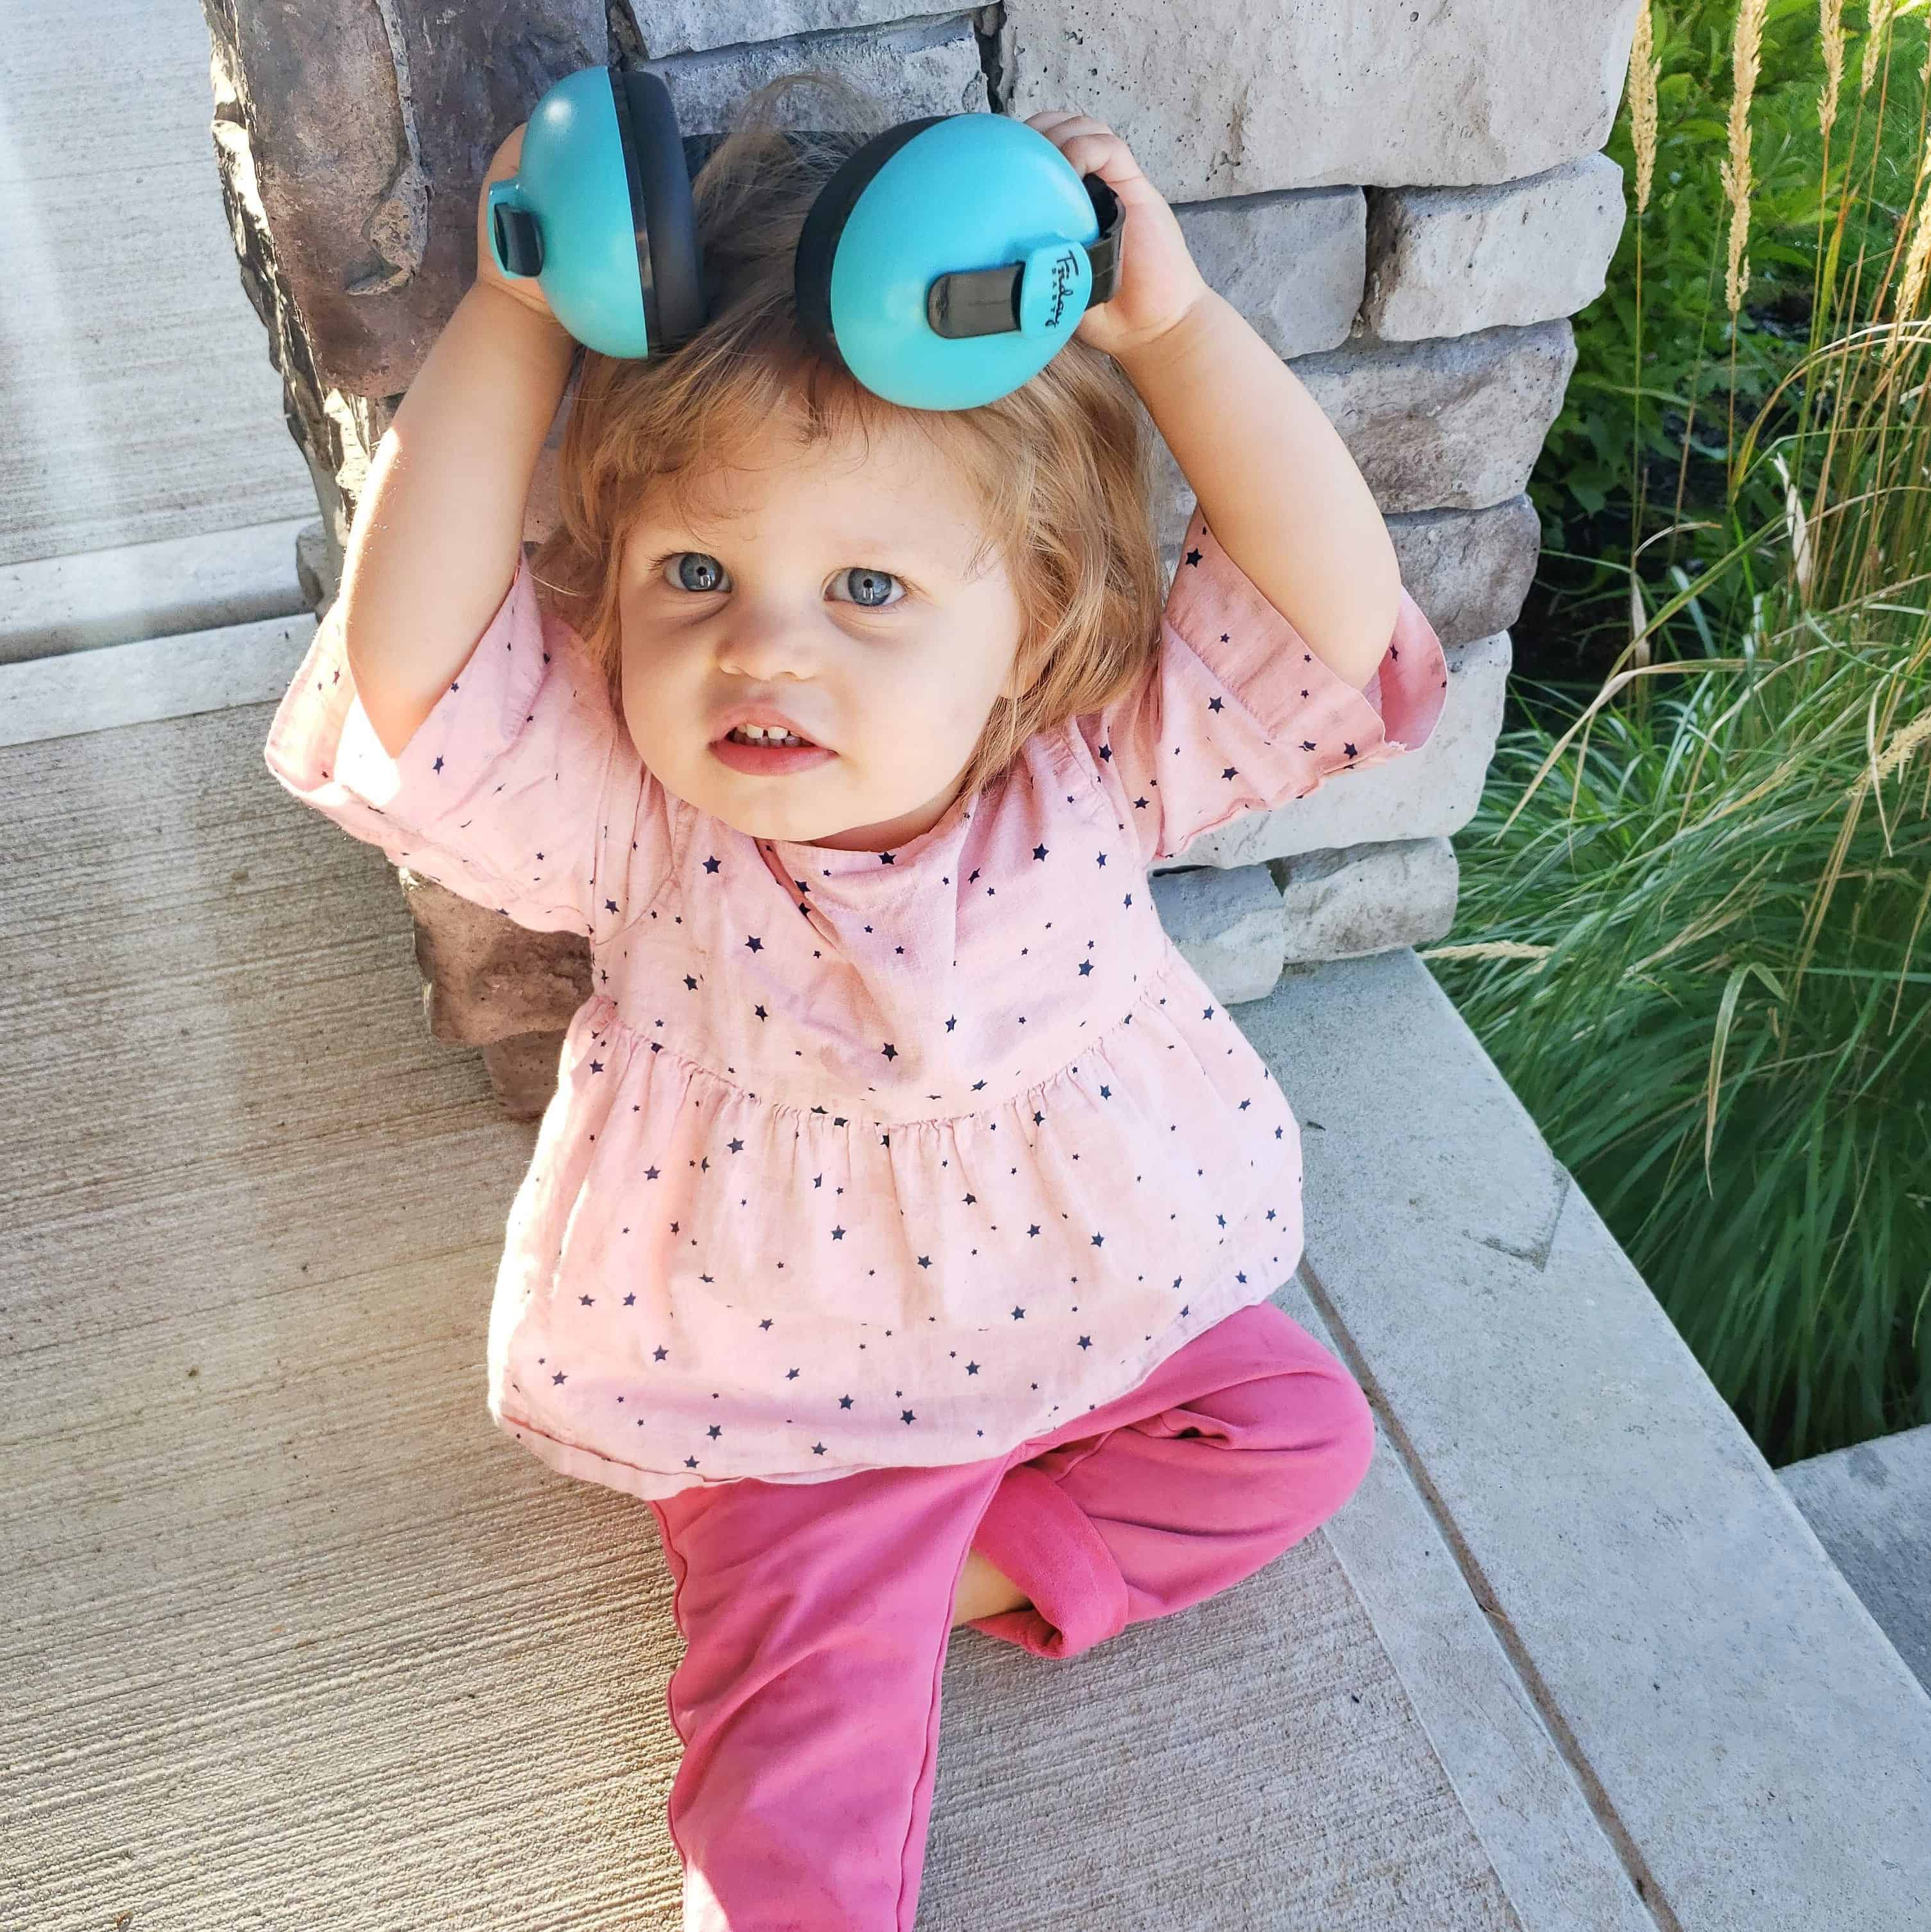 FridayBaby Headphones - Infant Ear Protection 2